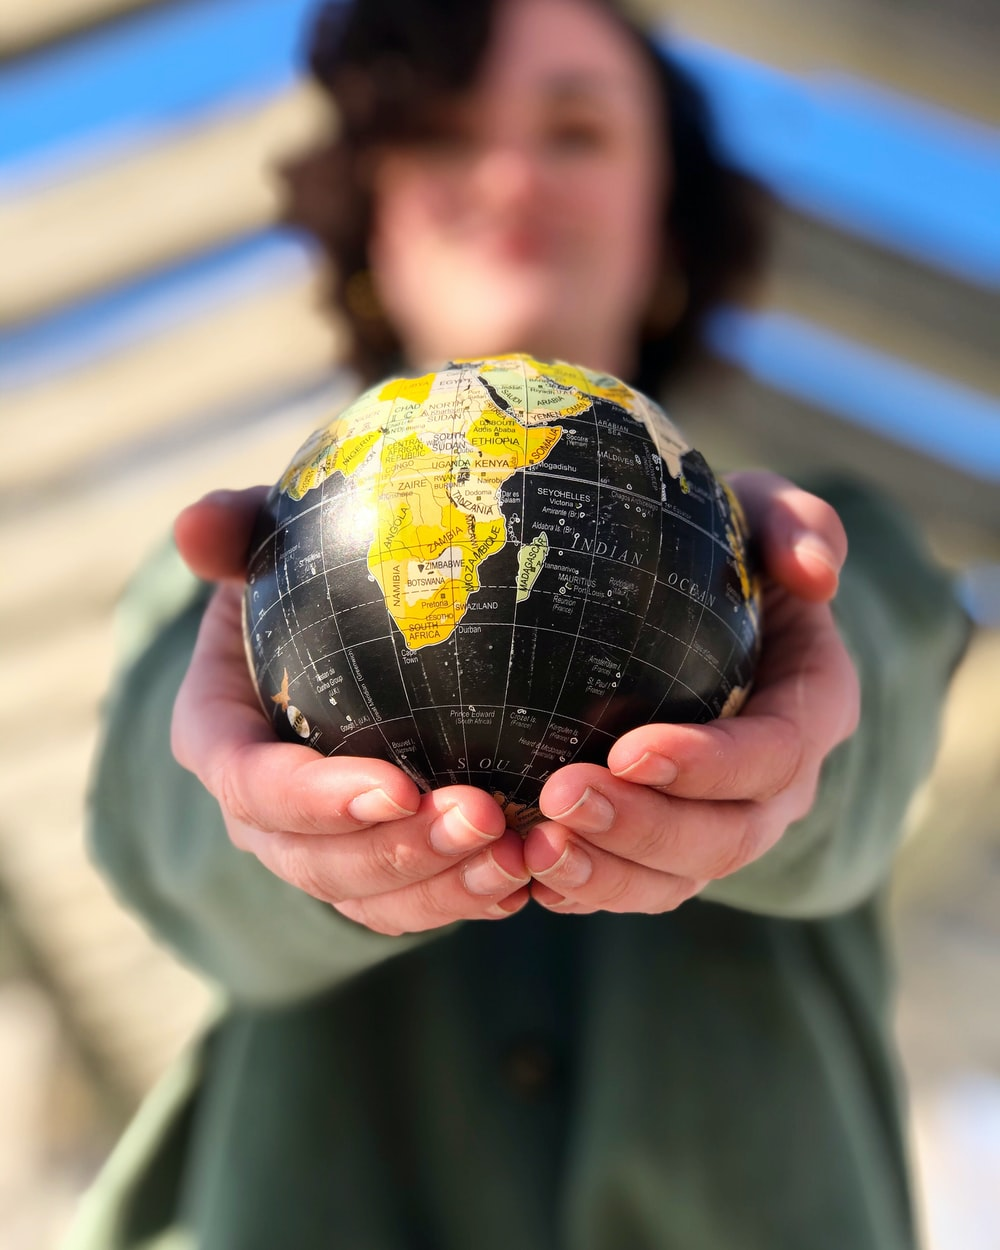 person holding yellow and black desk globe